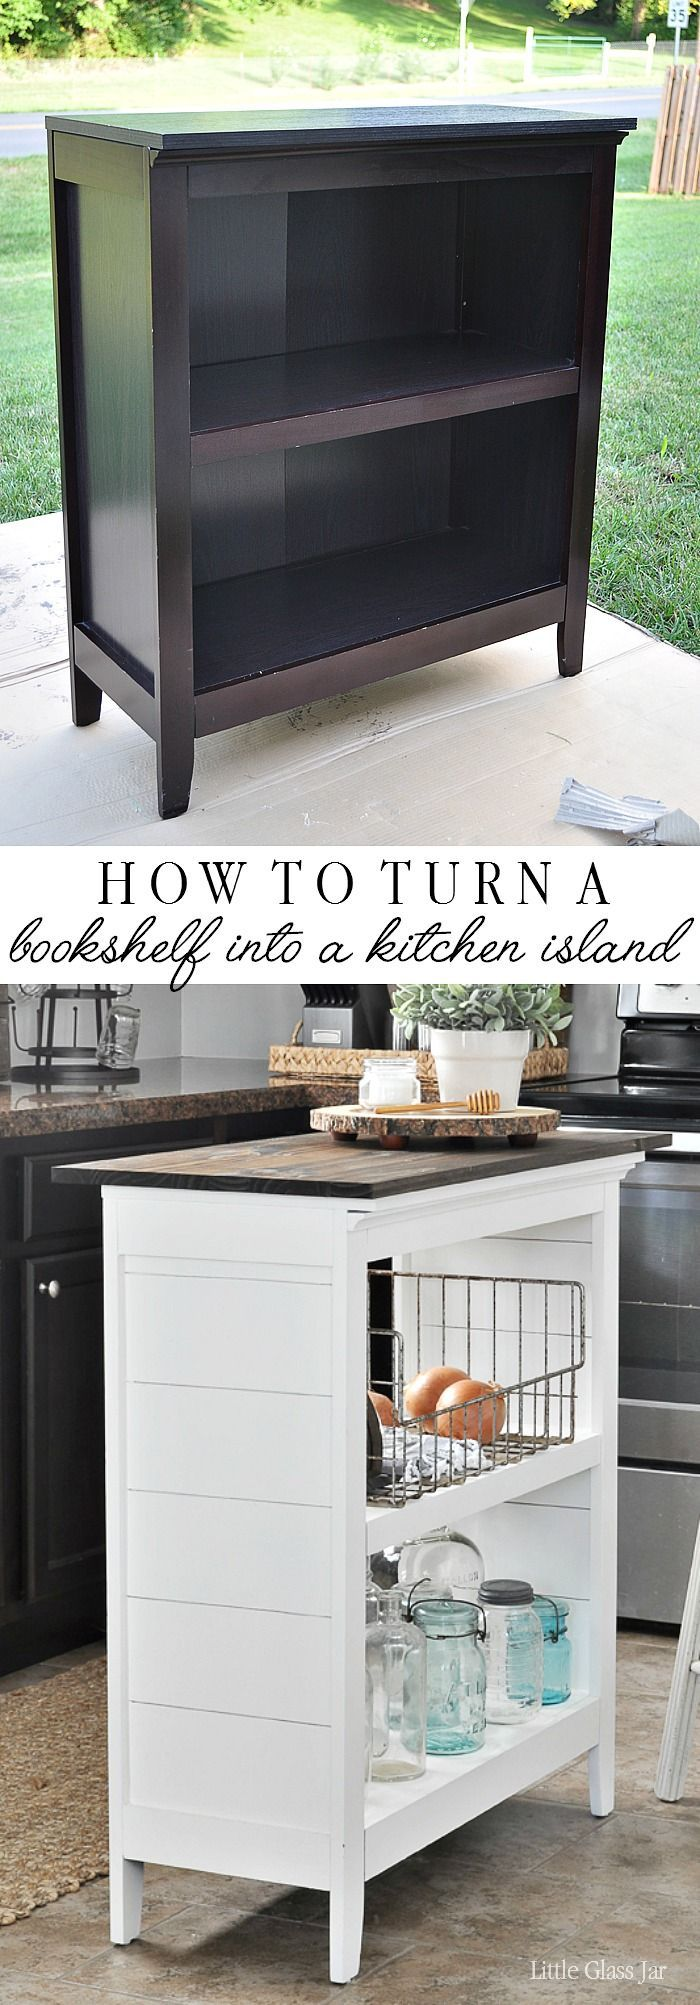 Build kitchen island table - Bookshelf Kitchen Island